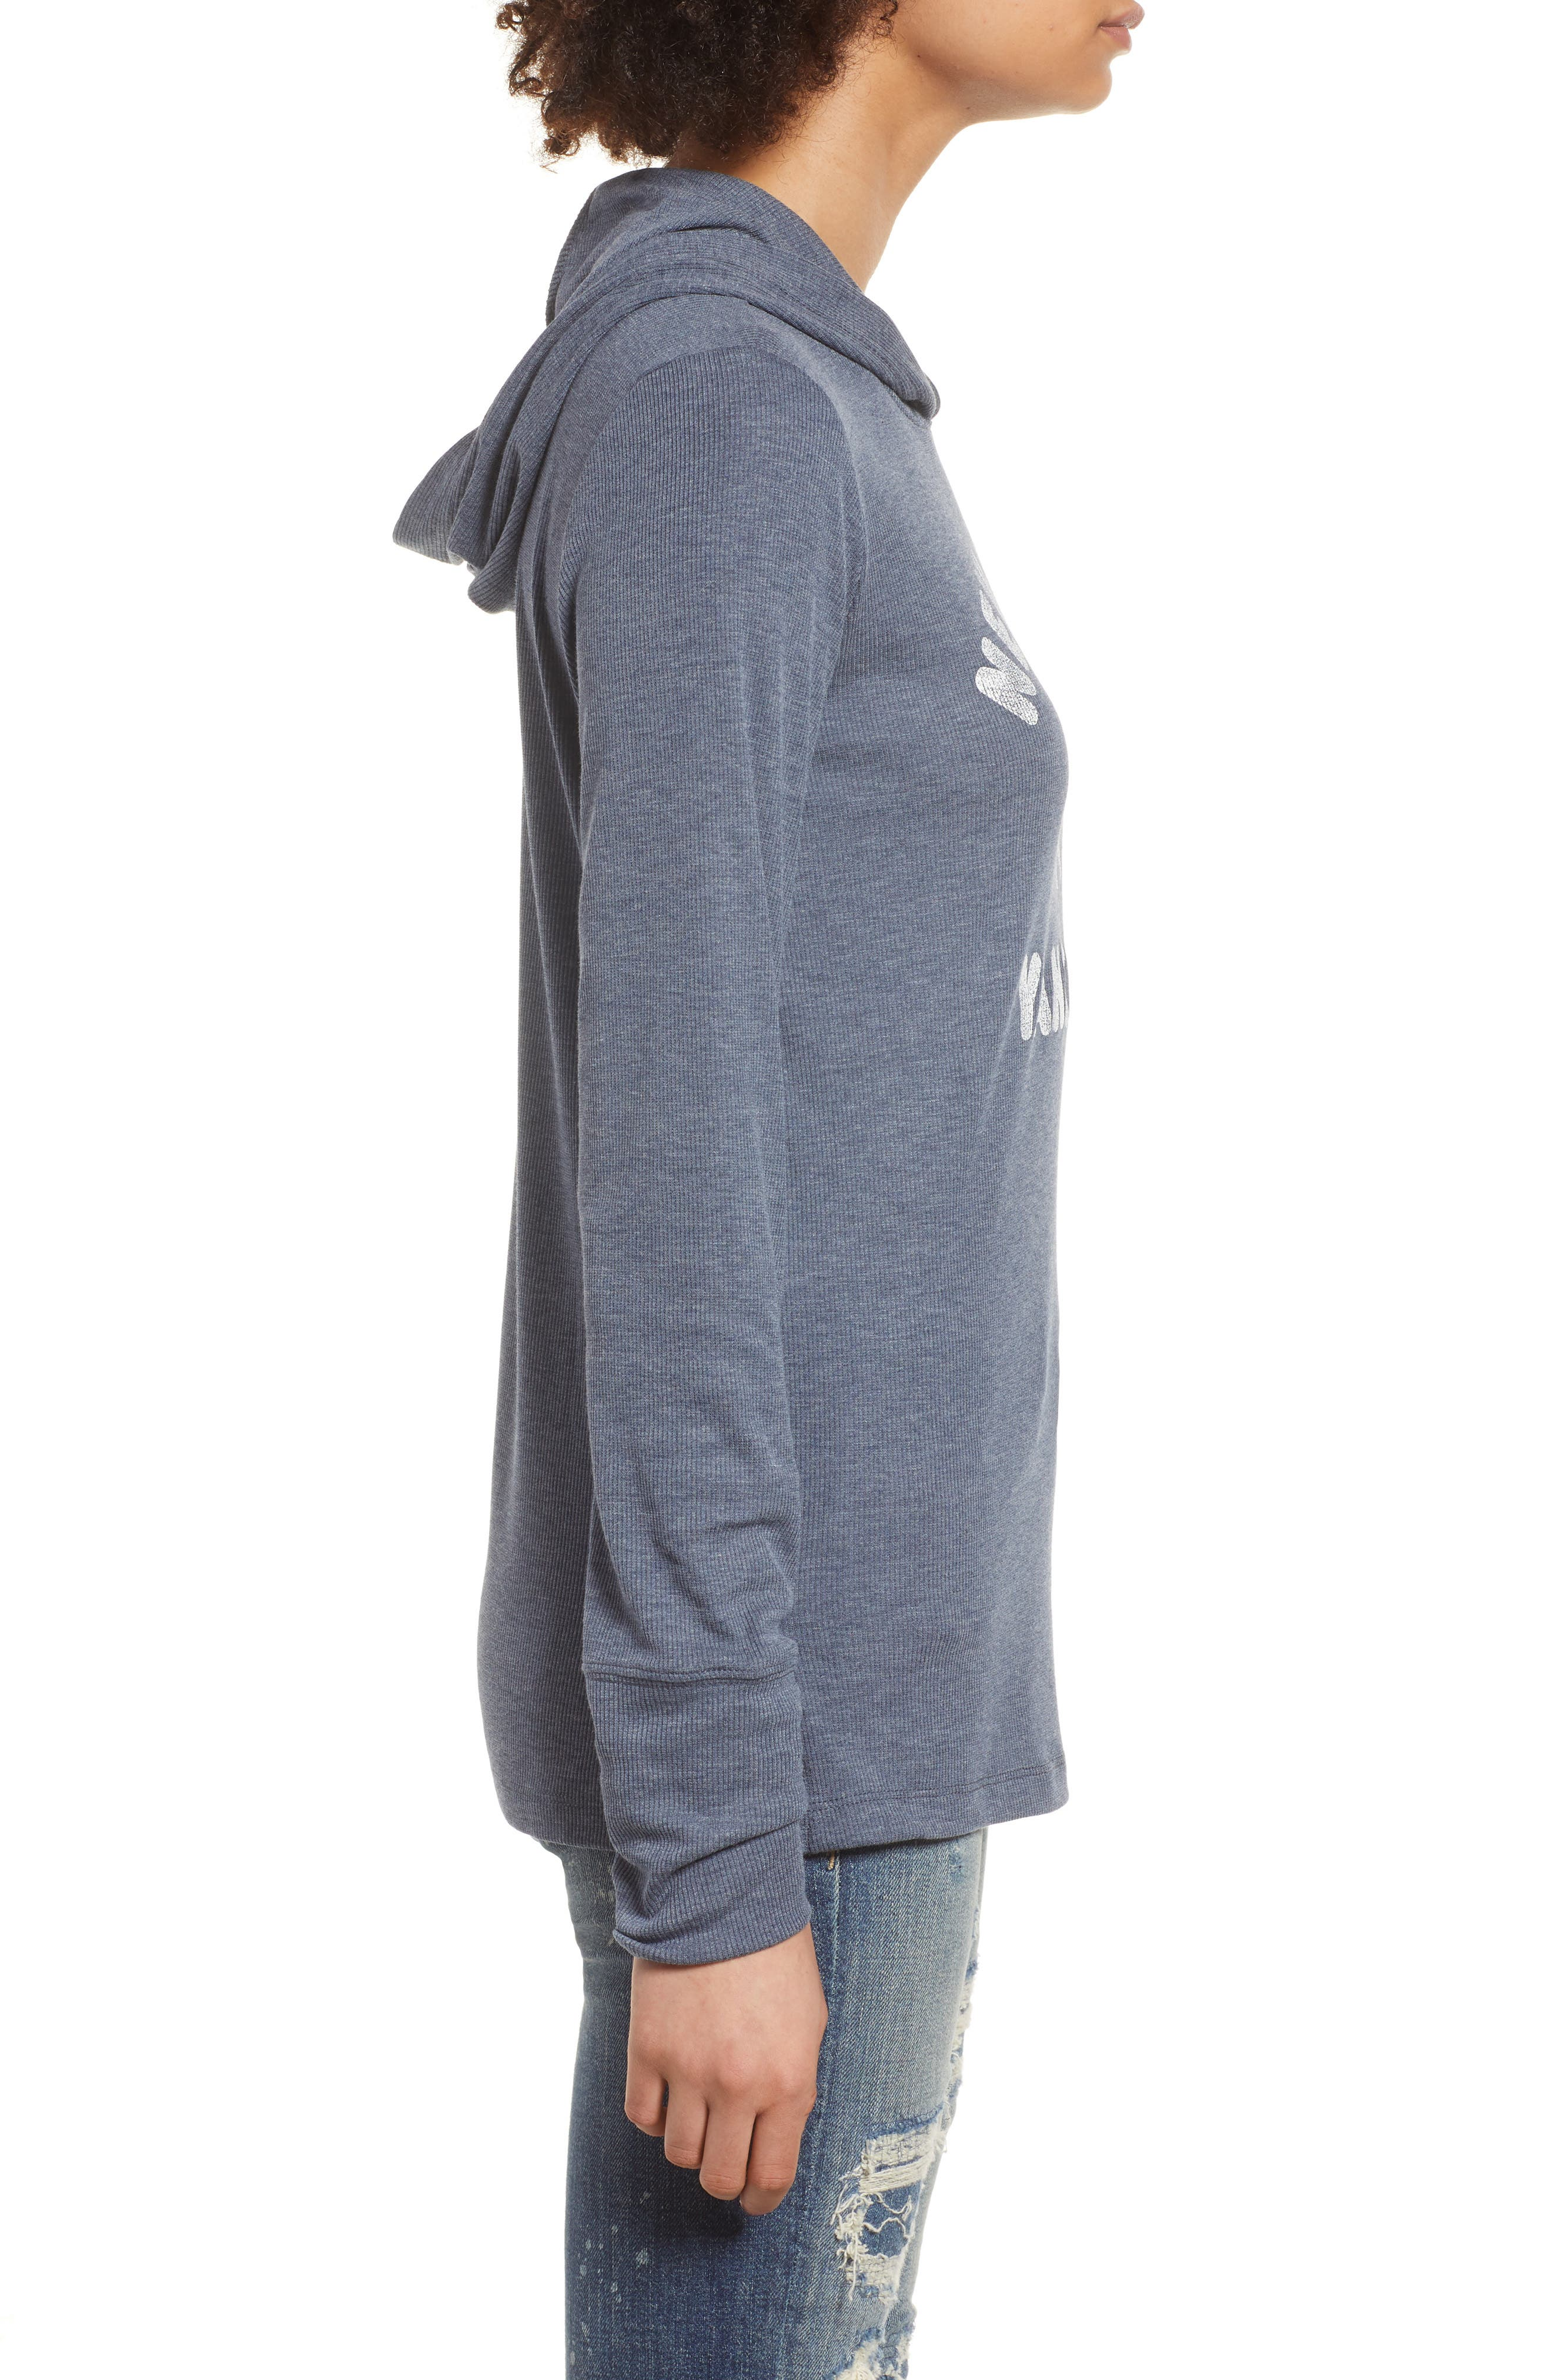 Campbell New York Yankees Rib Knit Hooded Top,                             Alternate thumbnail 3, color,